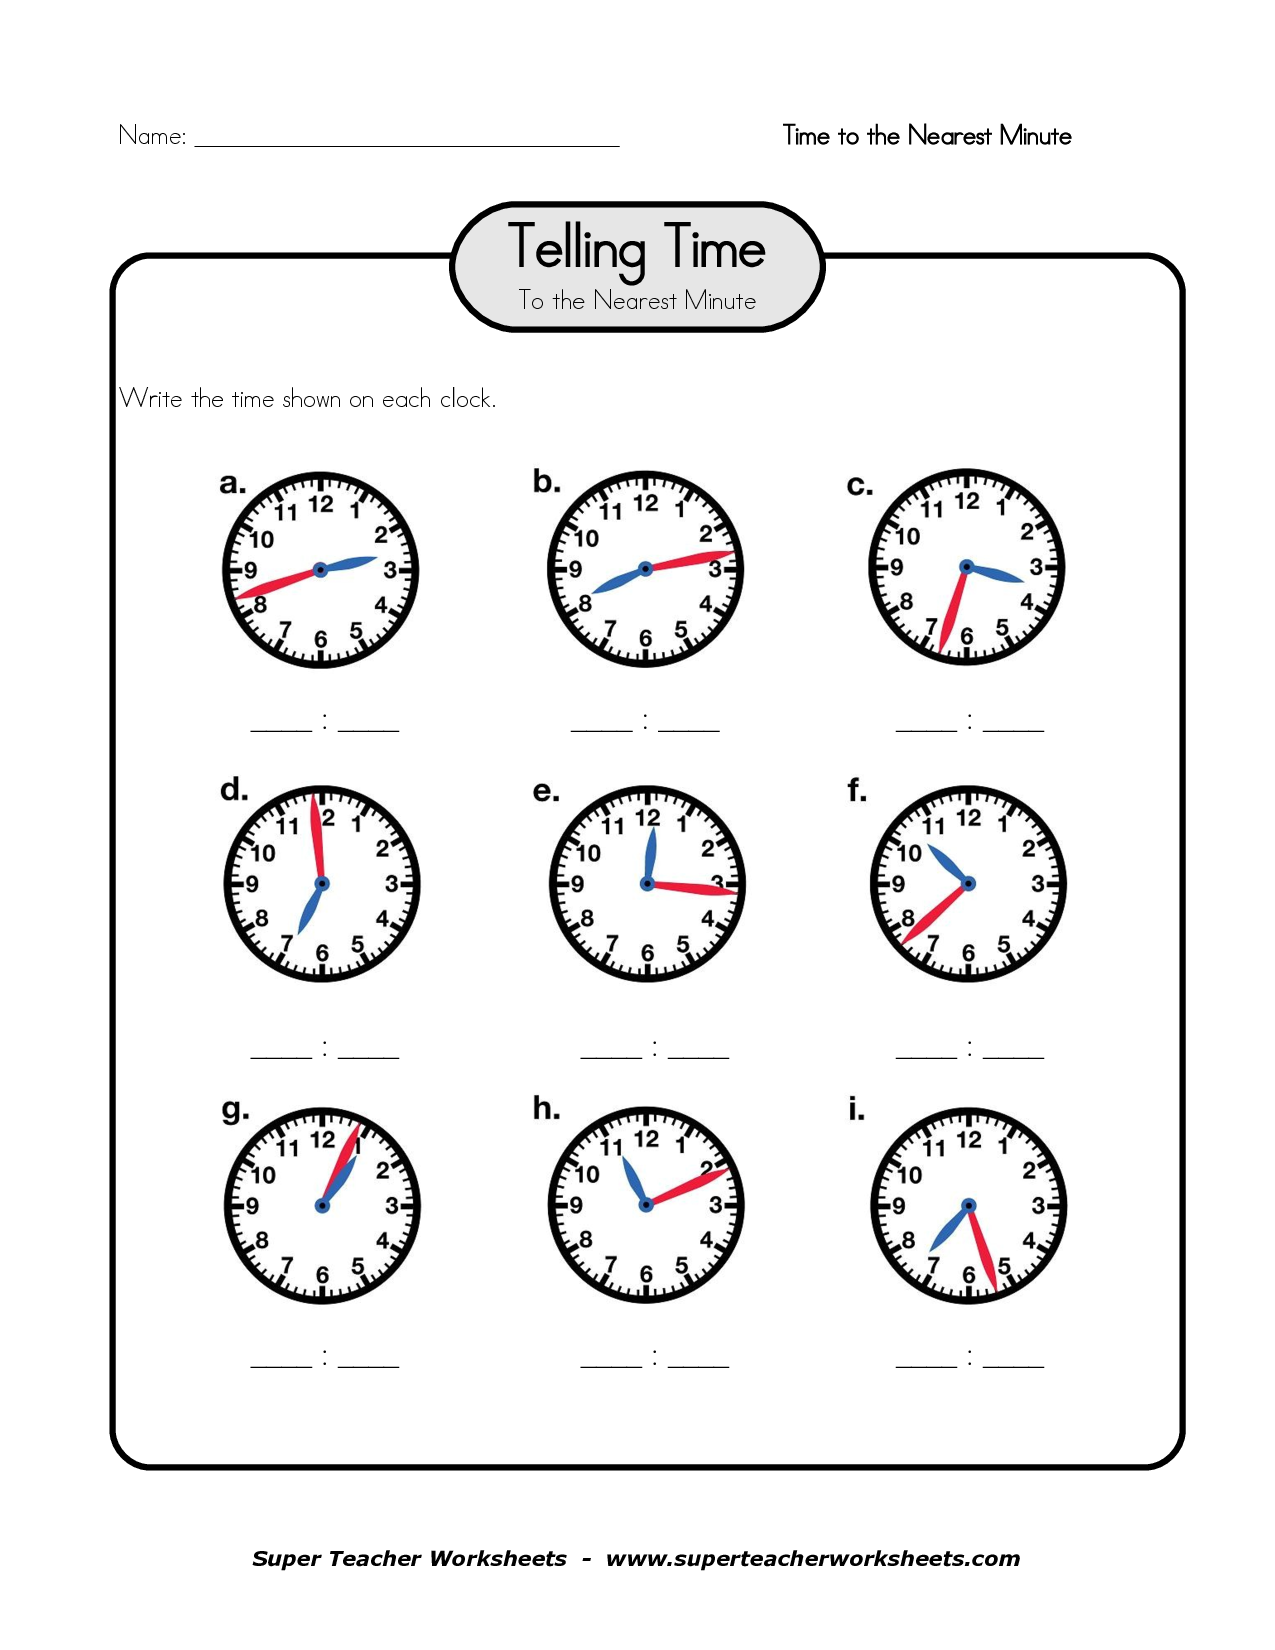 Printable Worksheets For Telling Time